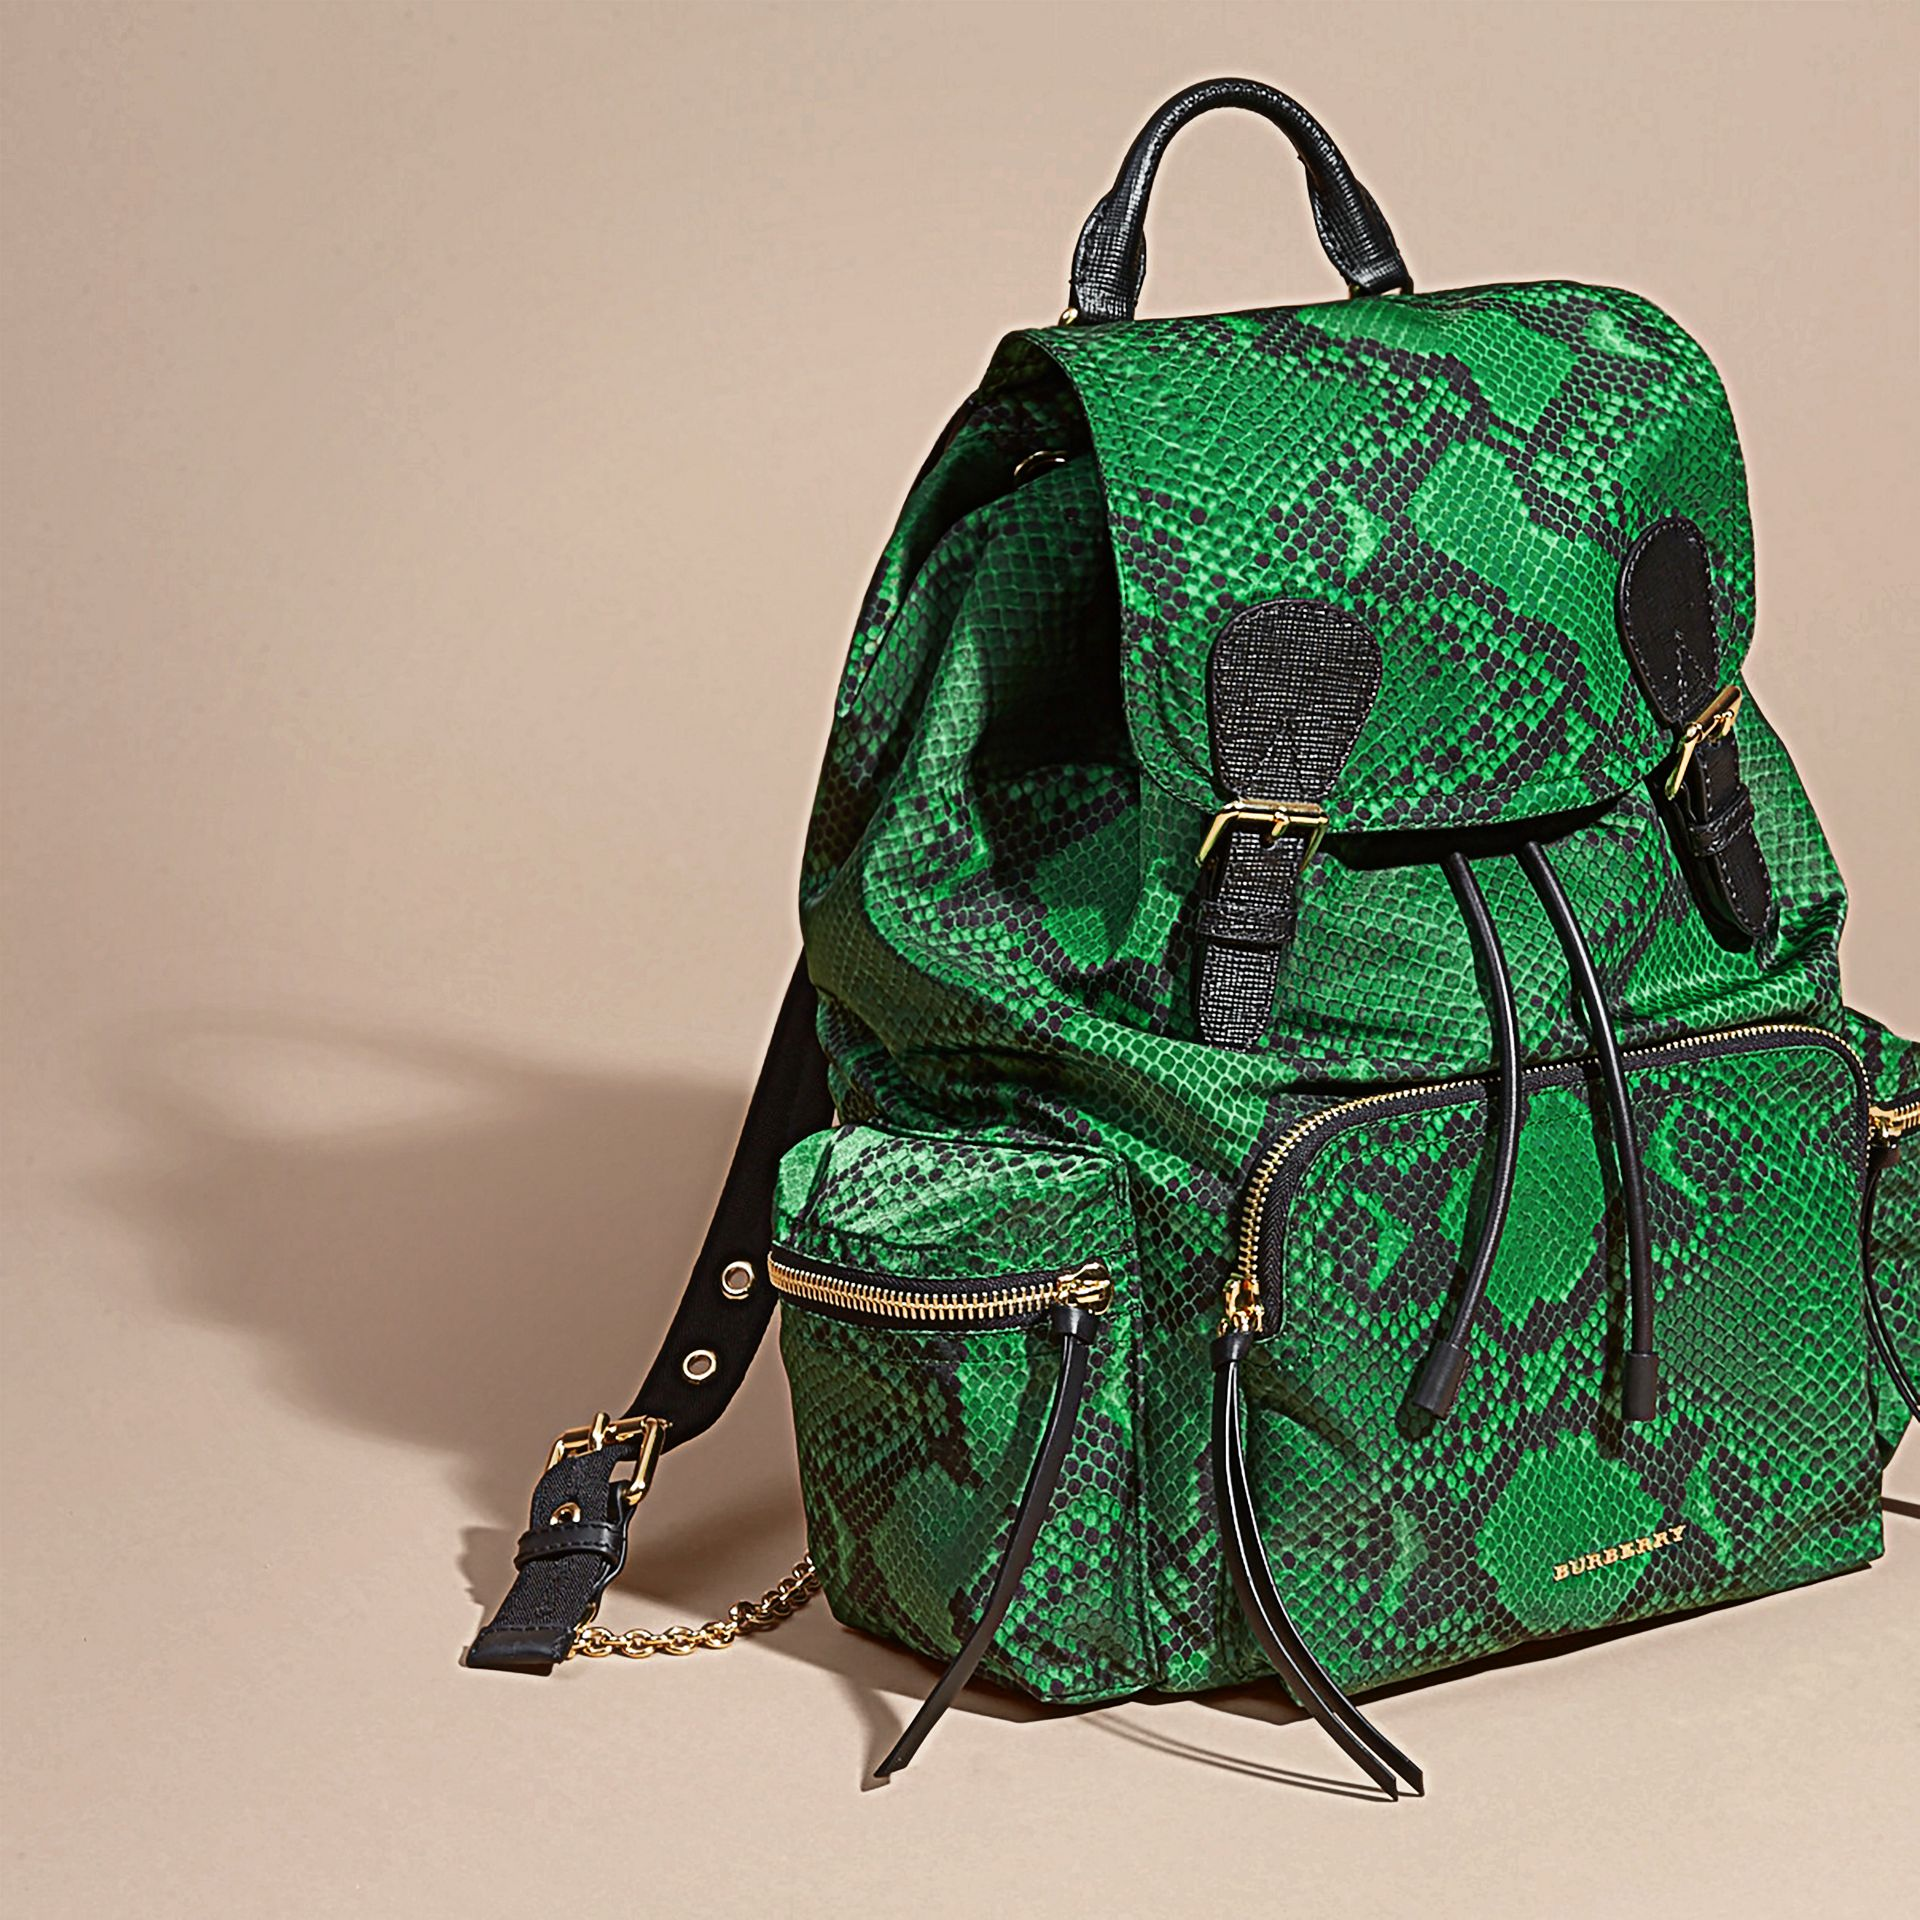 Green The Large Rucksack in Python Print Nylon and Leather Green - gallery image 7